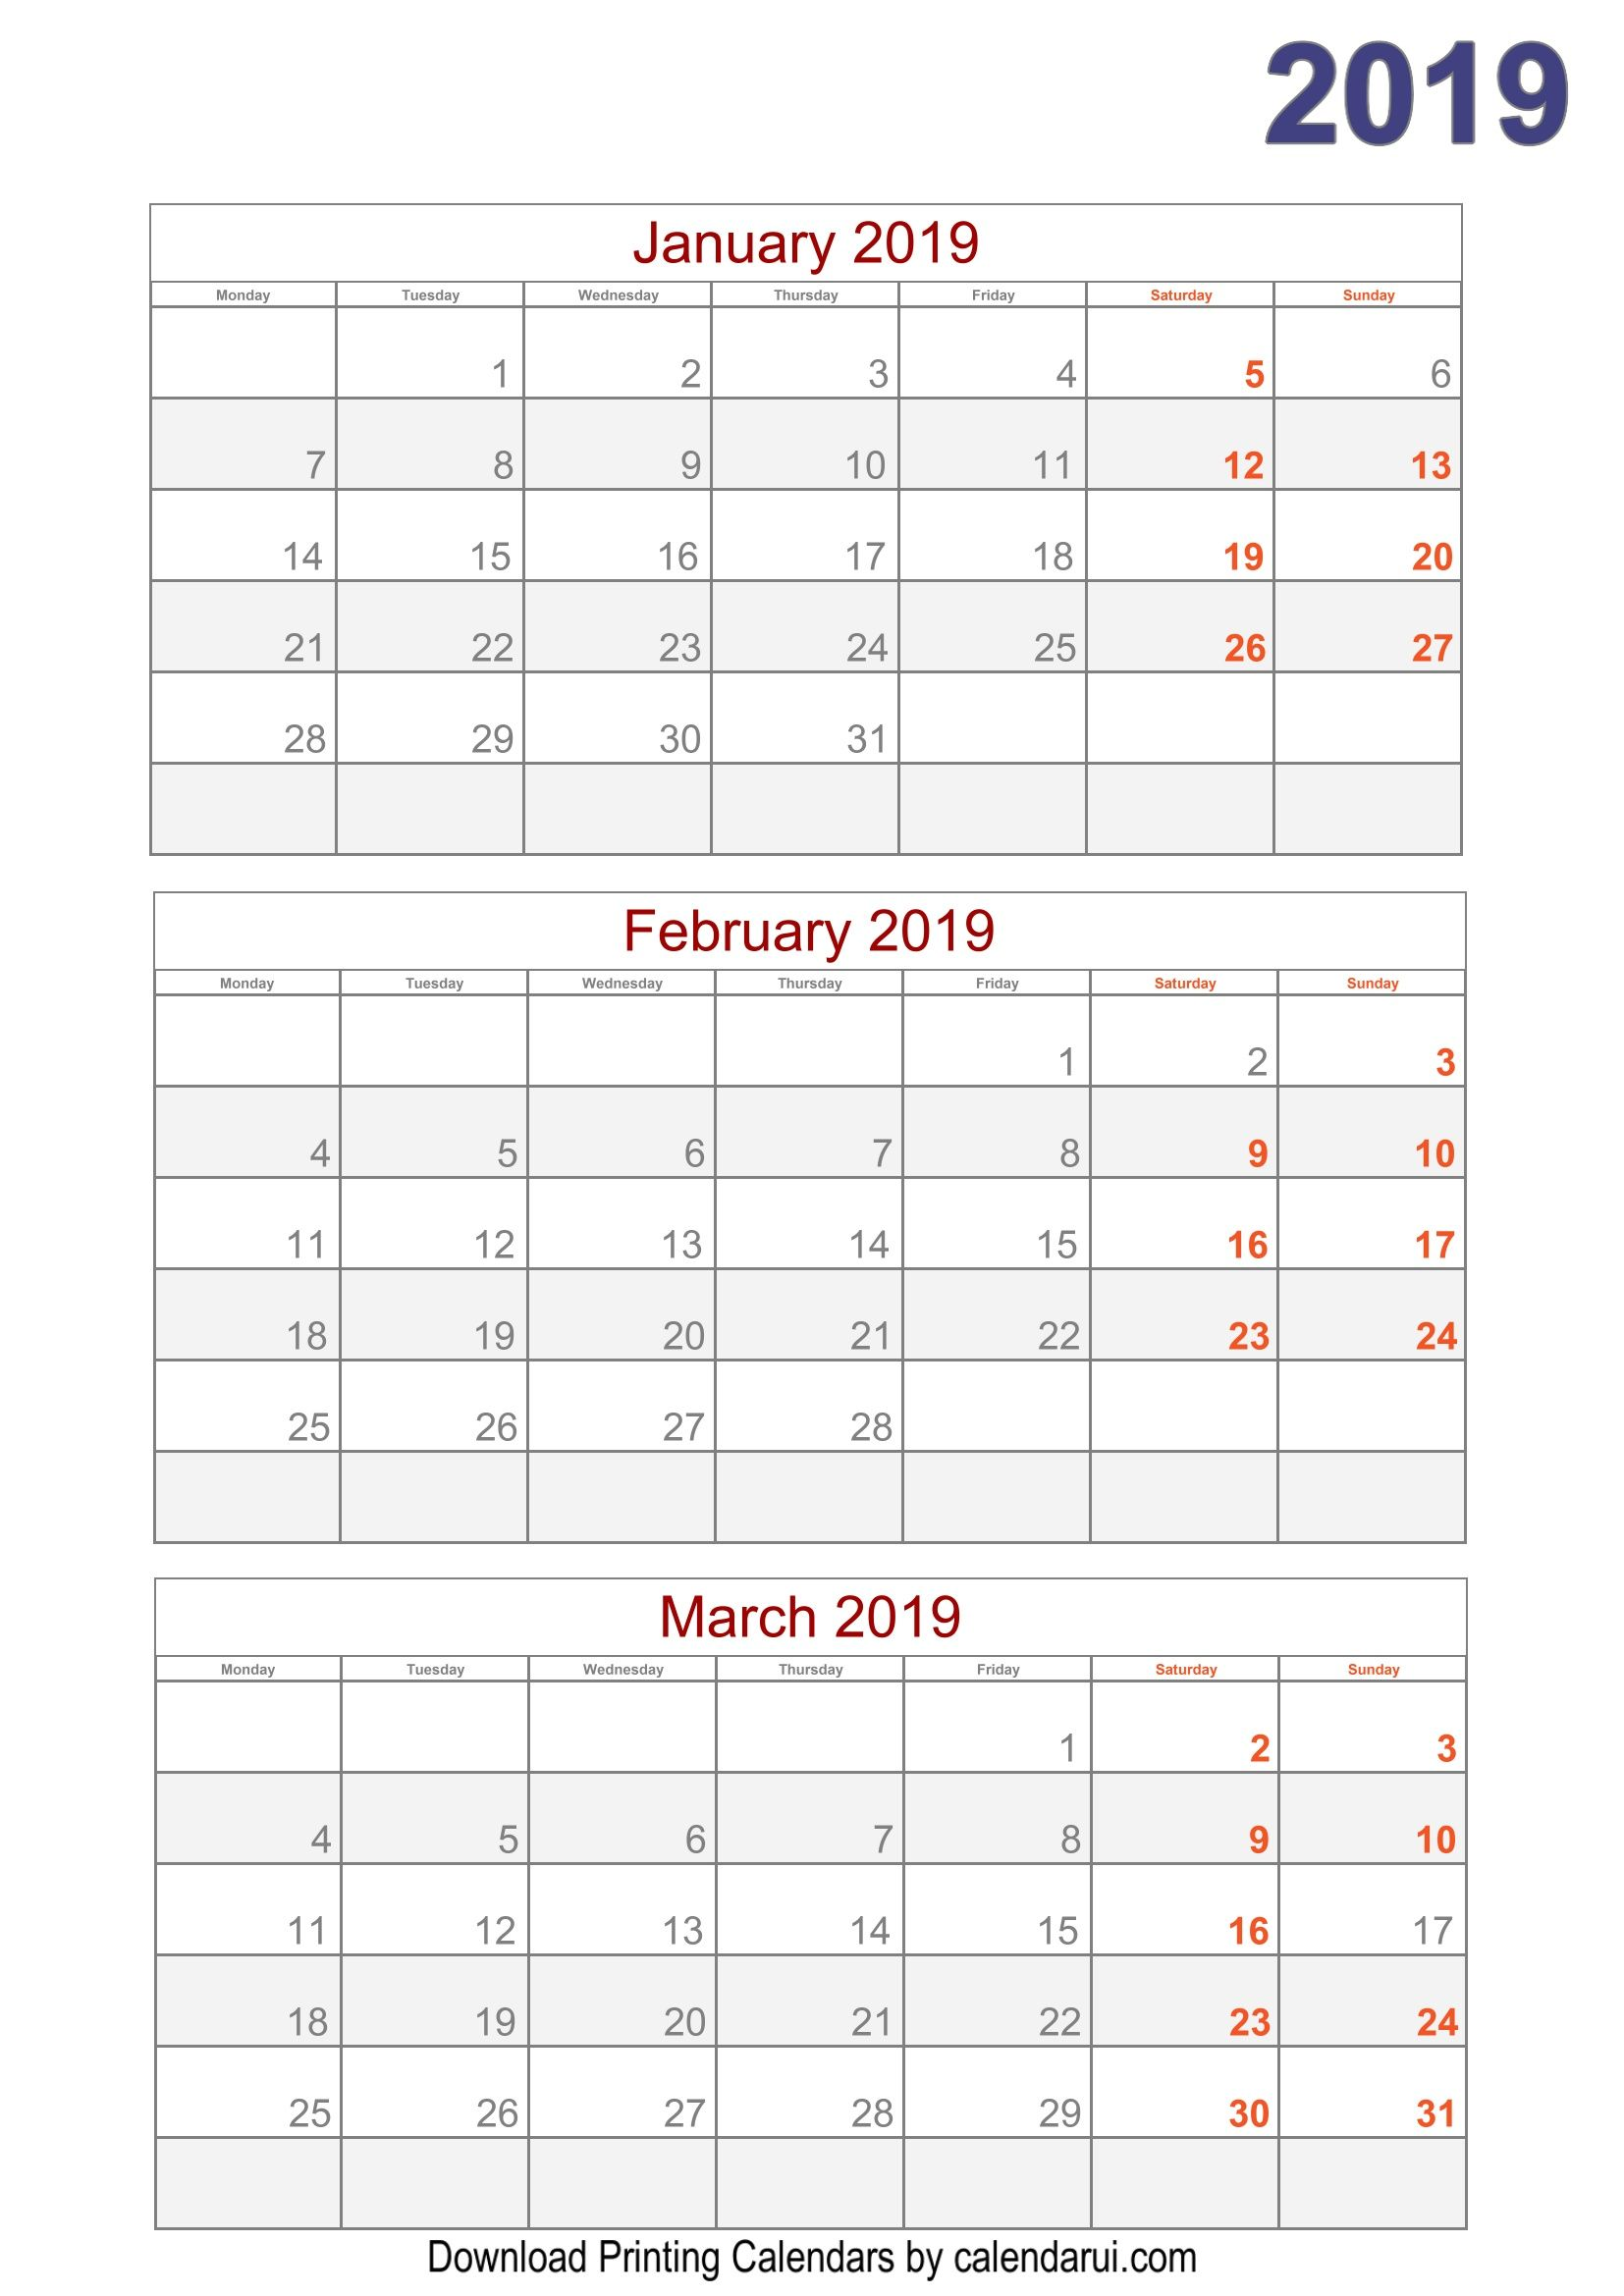 Quarterly Calendar Template 2019 2019 Quarterly Calendar Printable For Free | 2019 calendar